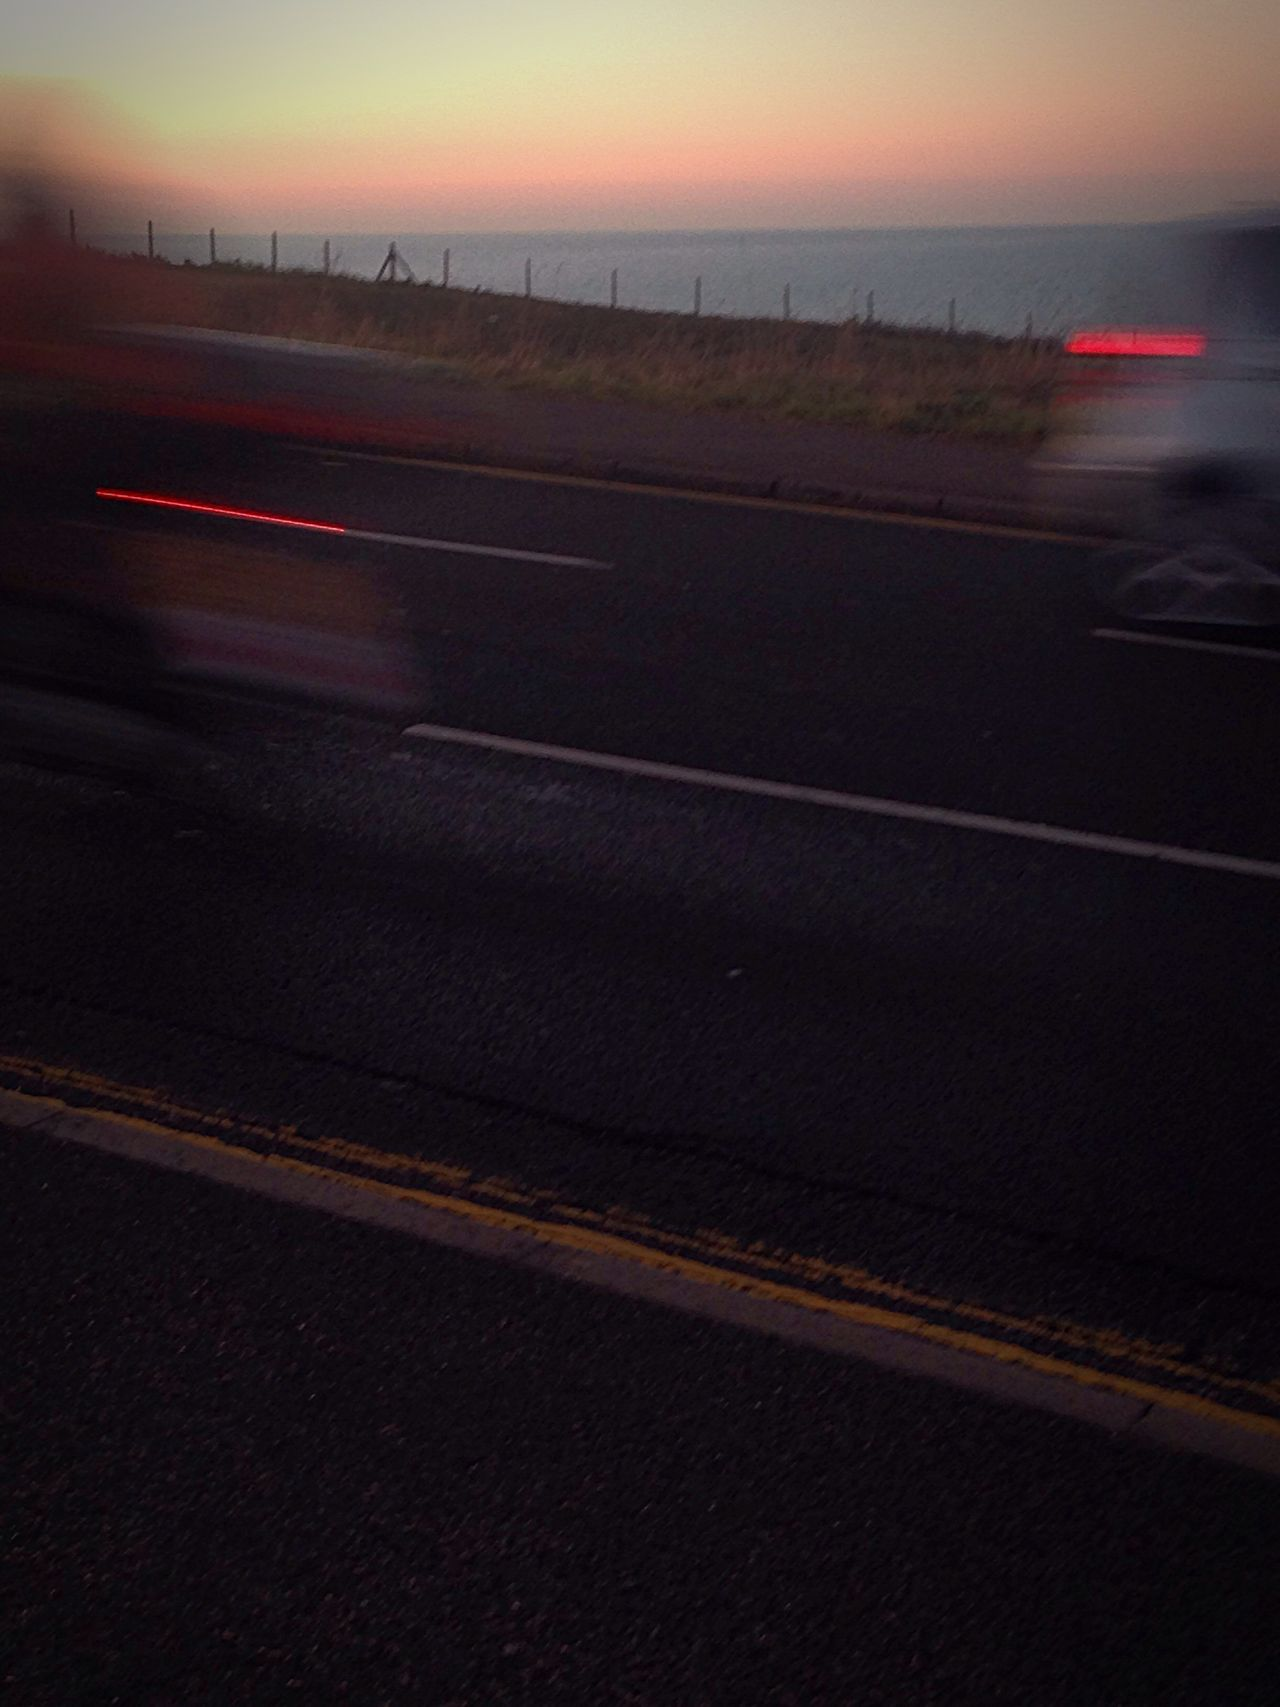 Transportation Sky Dark No People Sunset Landscape Road Outdoors Illuminated Nature Sunset Brighton Roedean